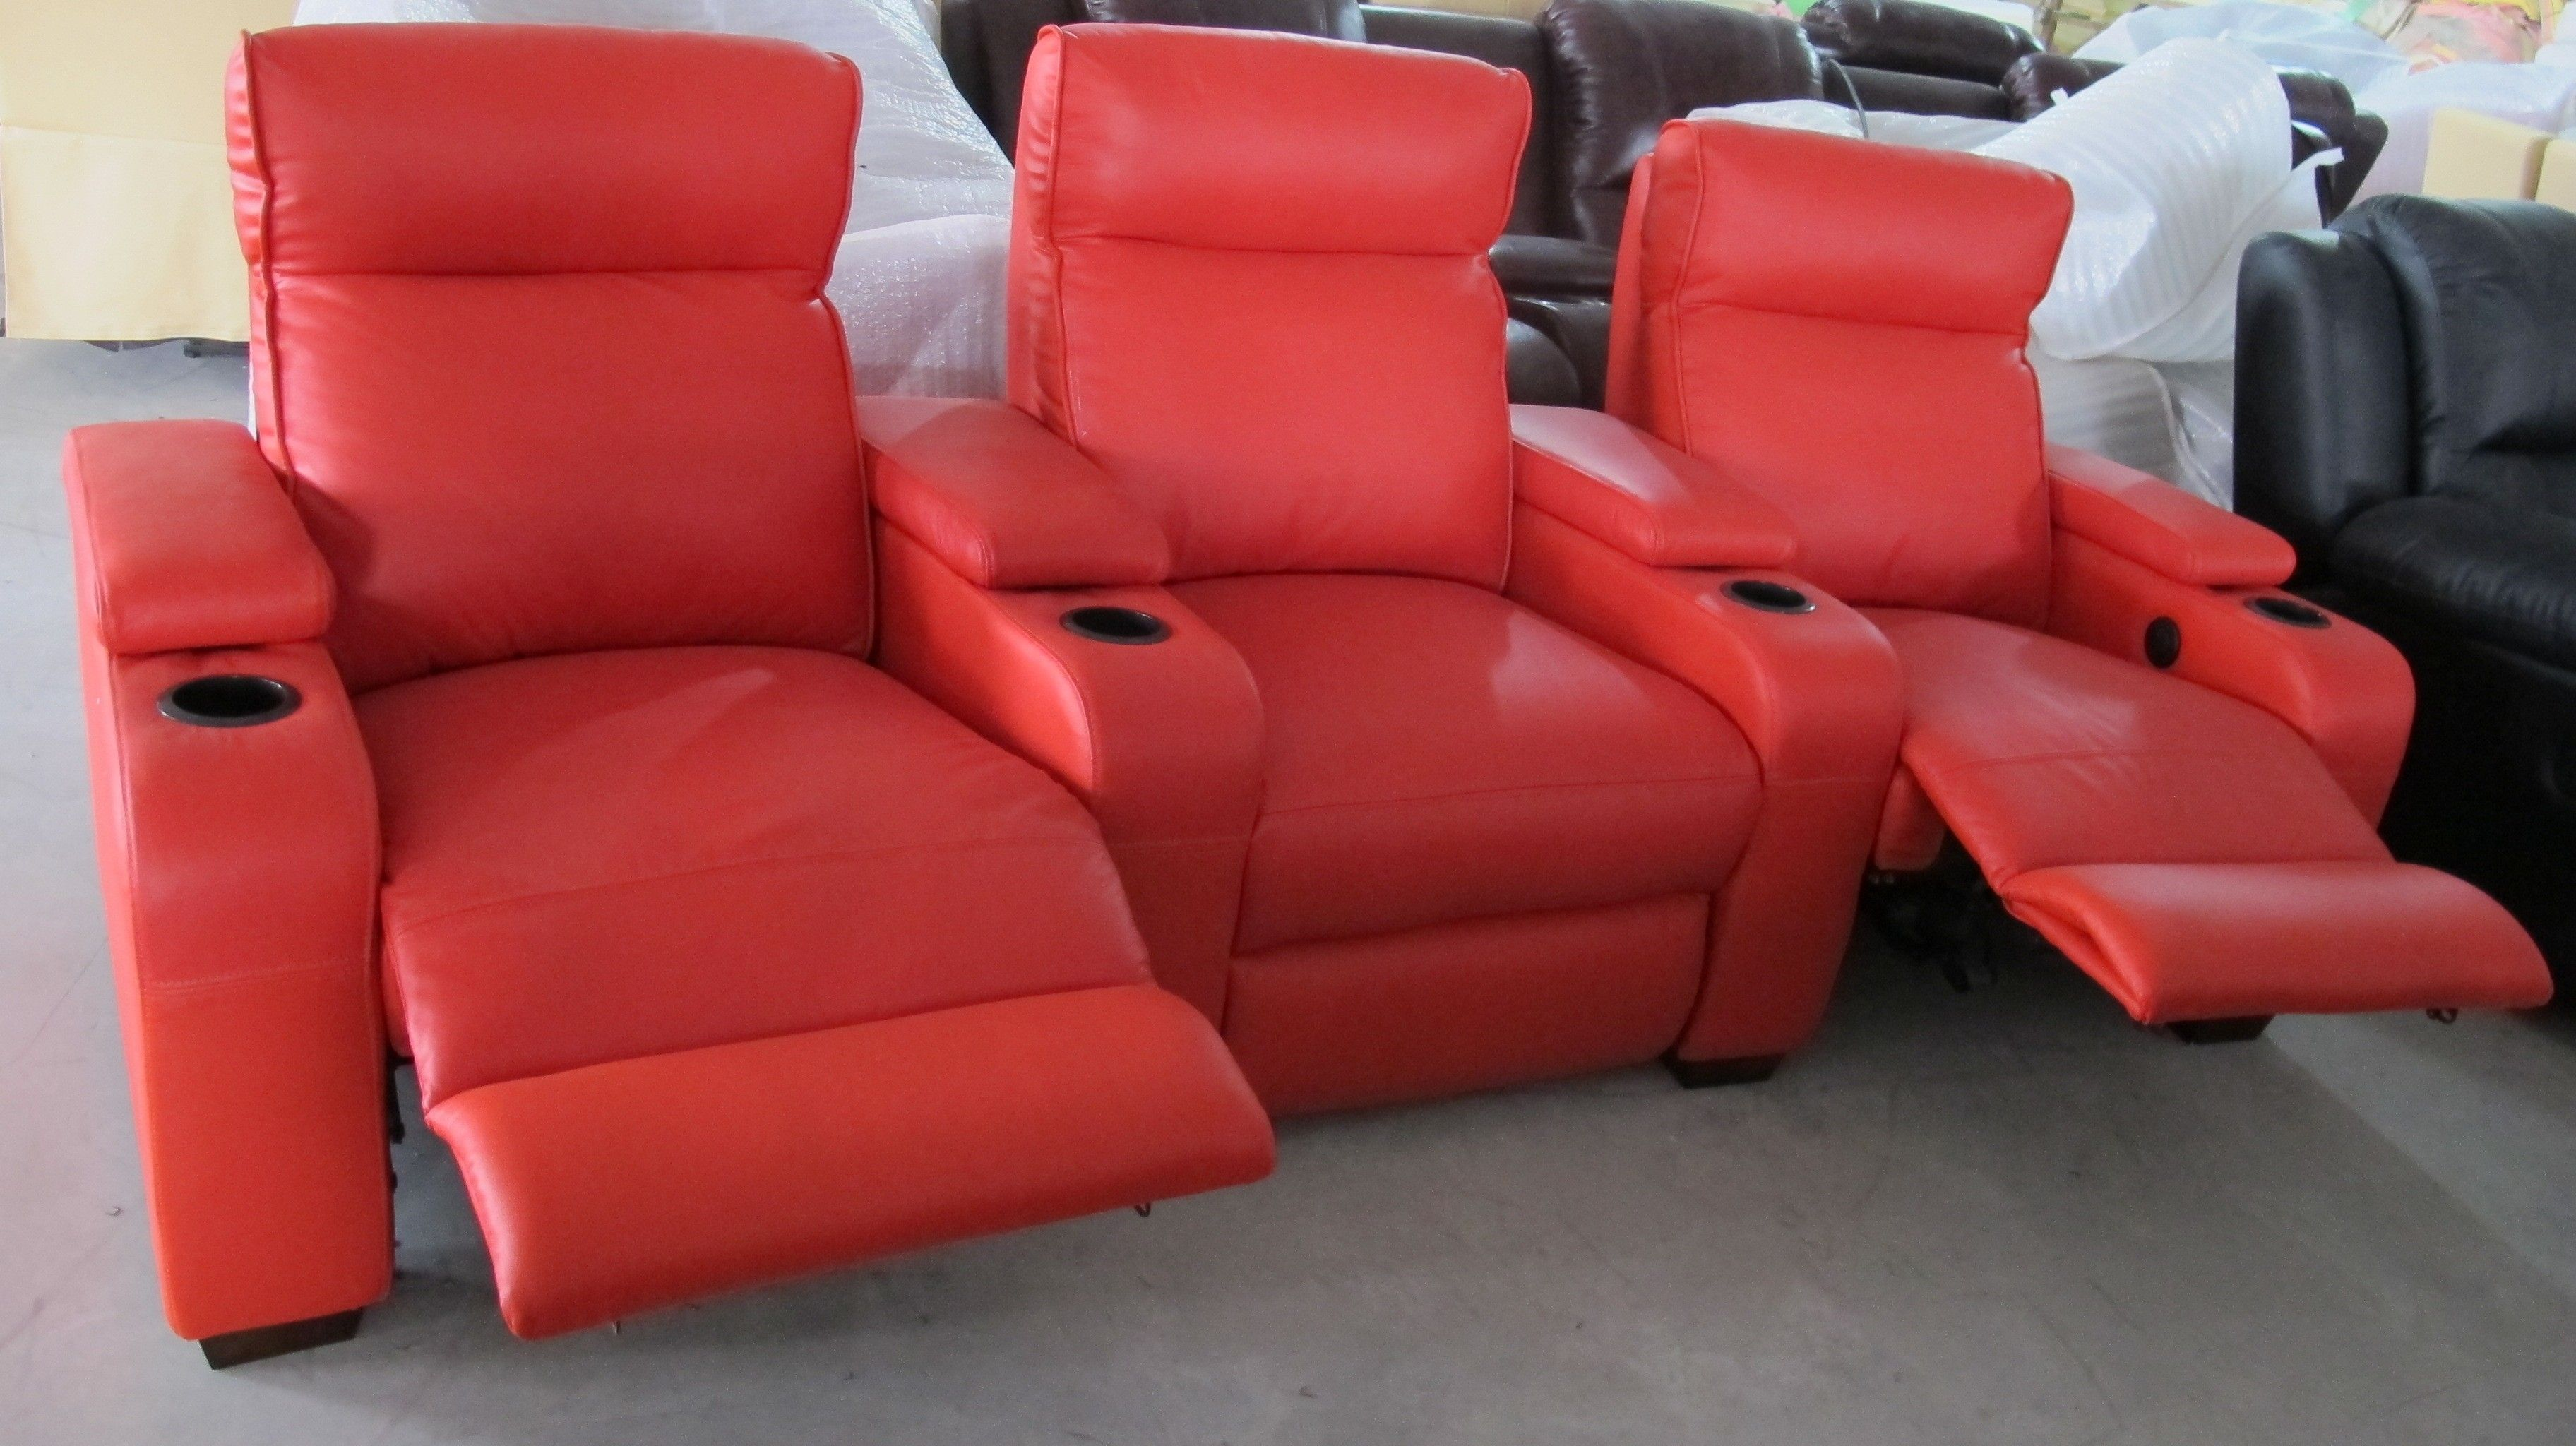 Lazy Boy Sofa Furniture Living Room Exotic Three Pieces Red Leather Recliner Sofa Lazy Boy Leather Sofa